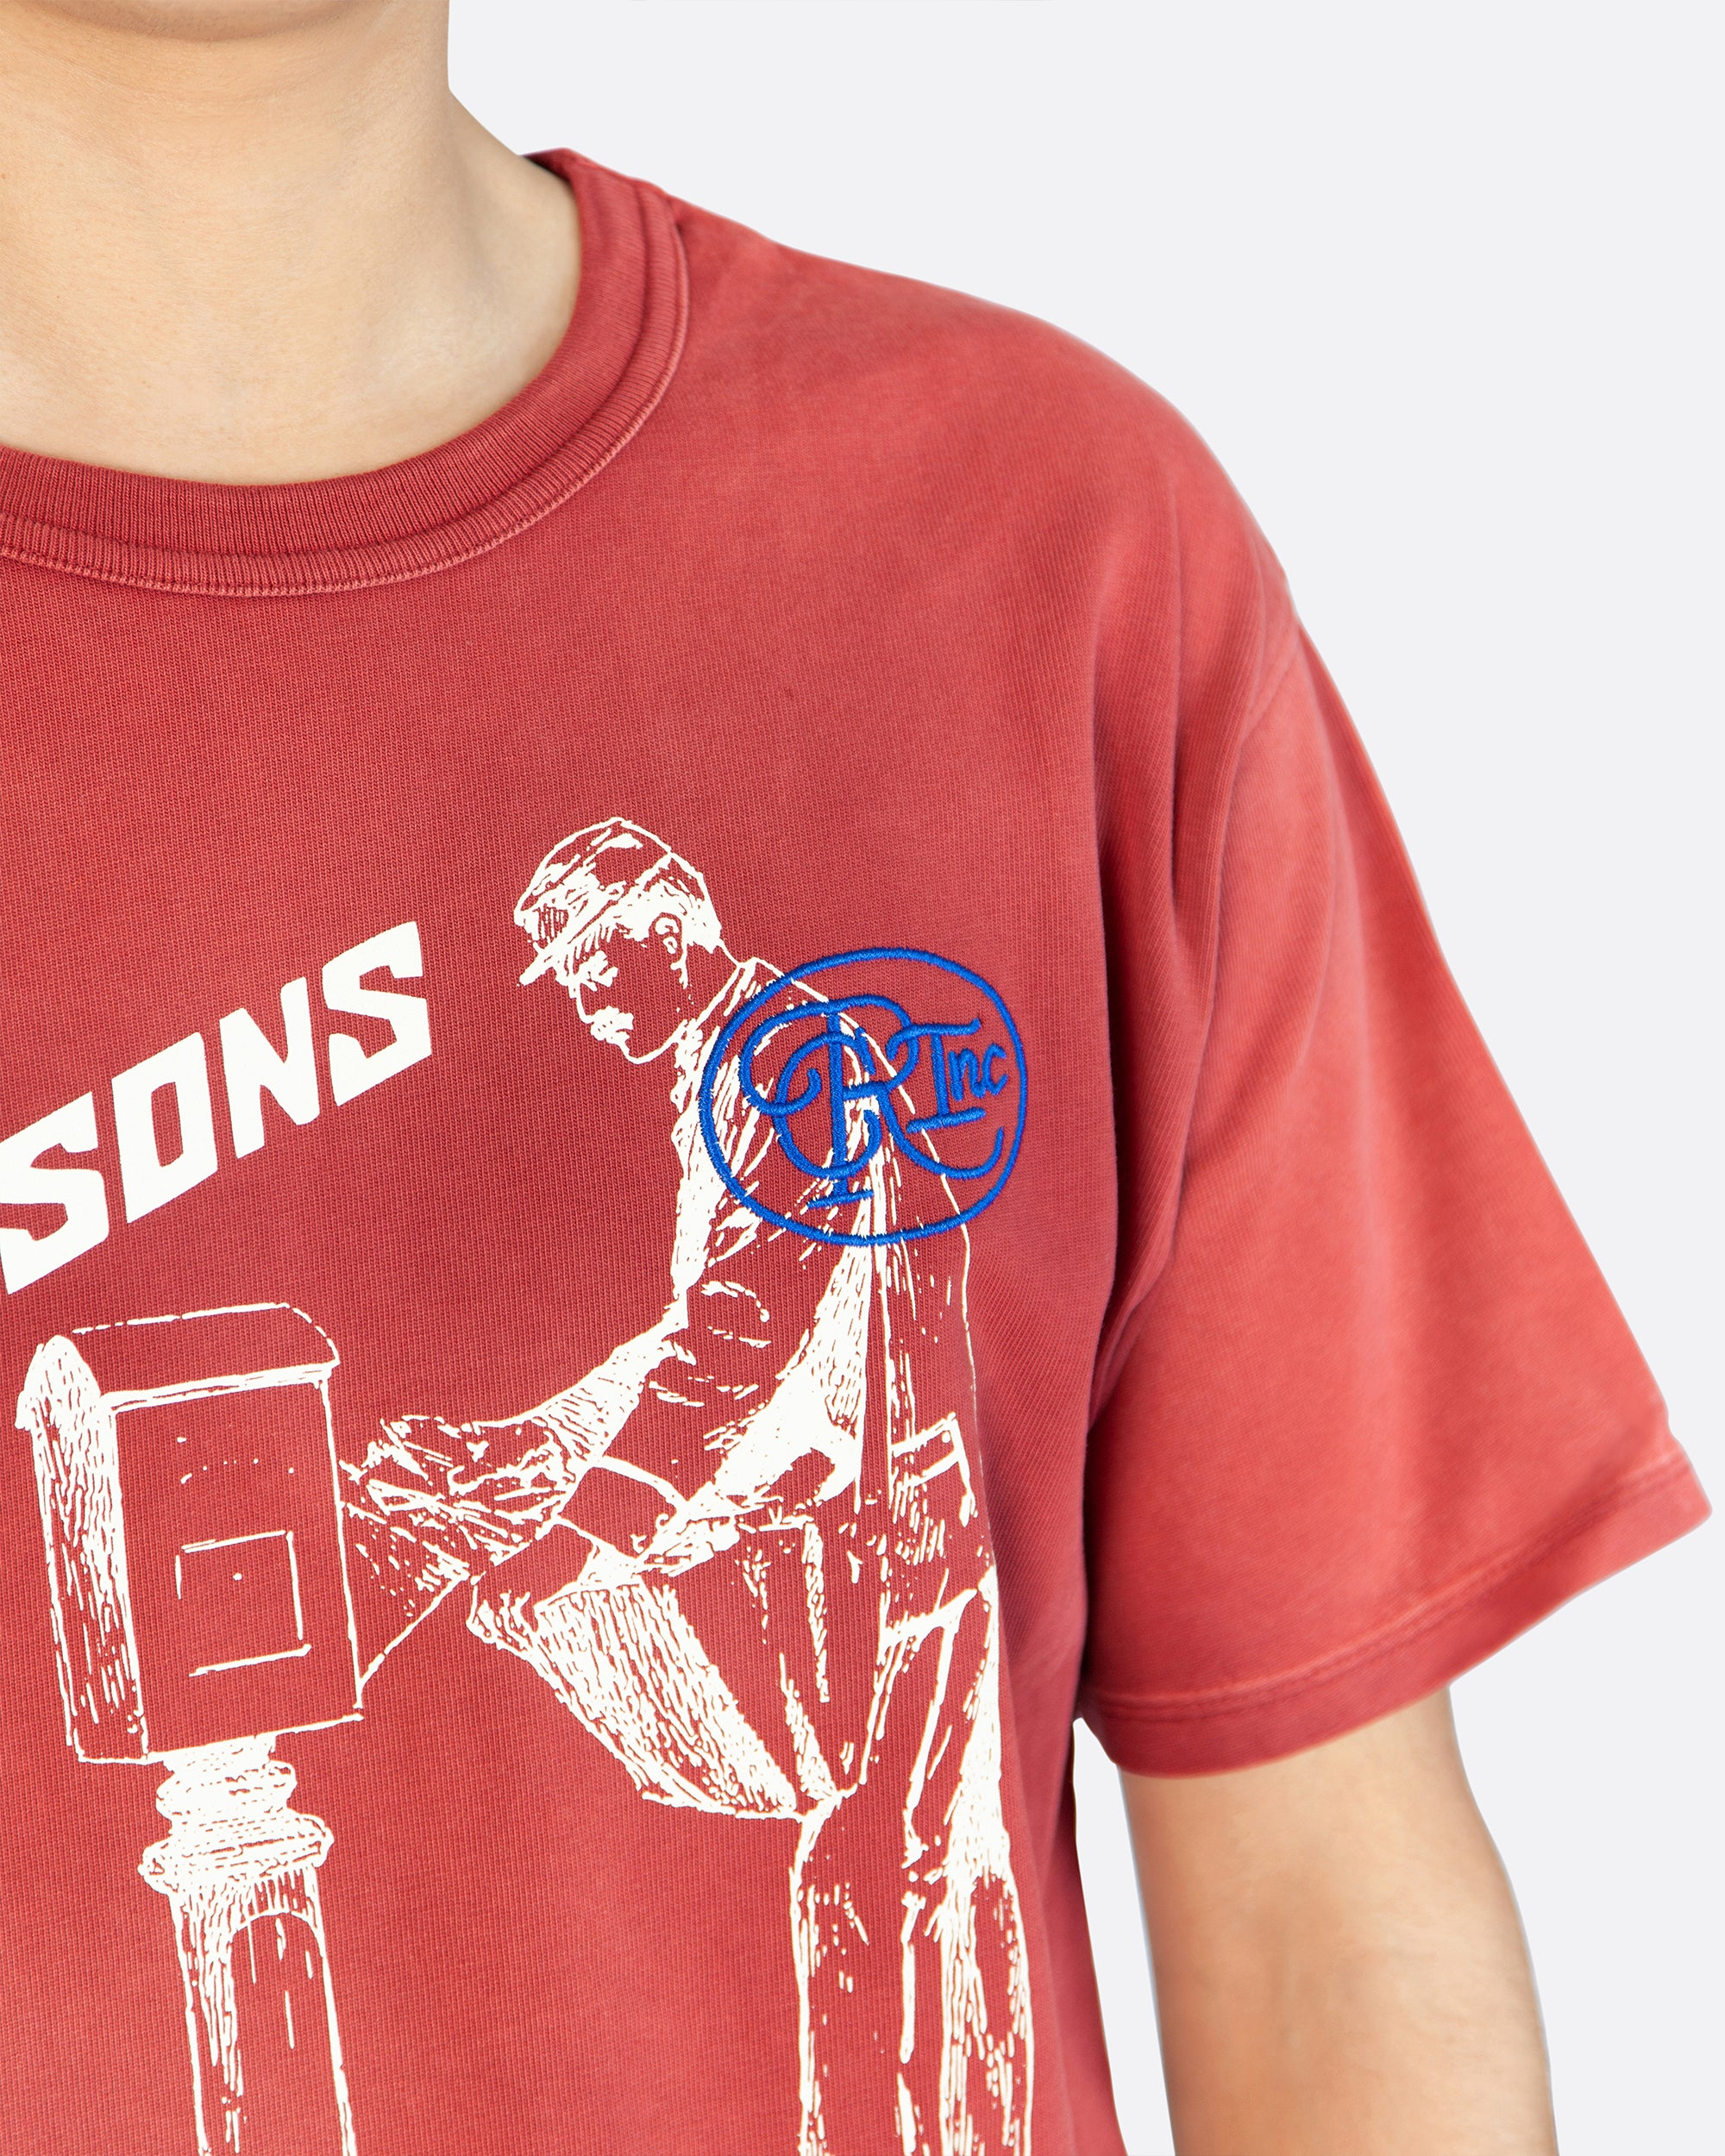 All Seasons Aged Tee Shirt in Red